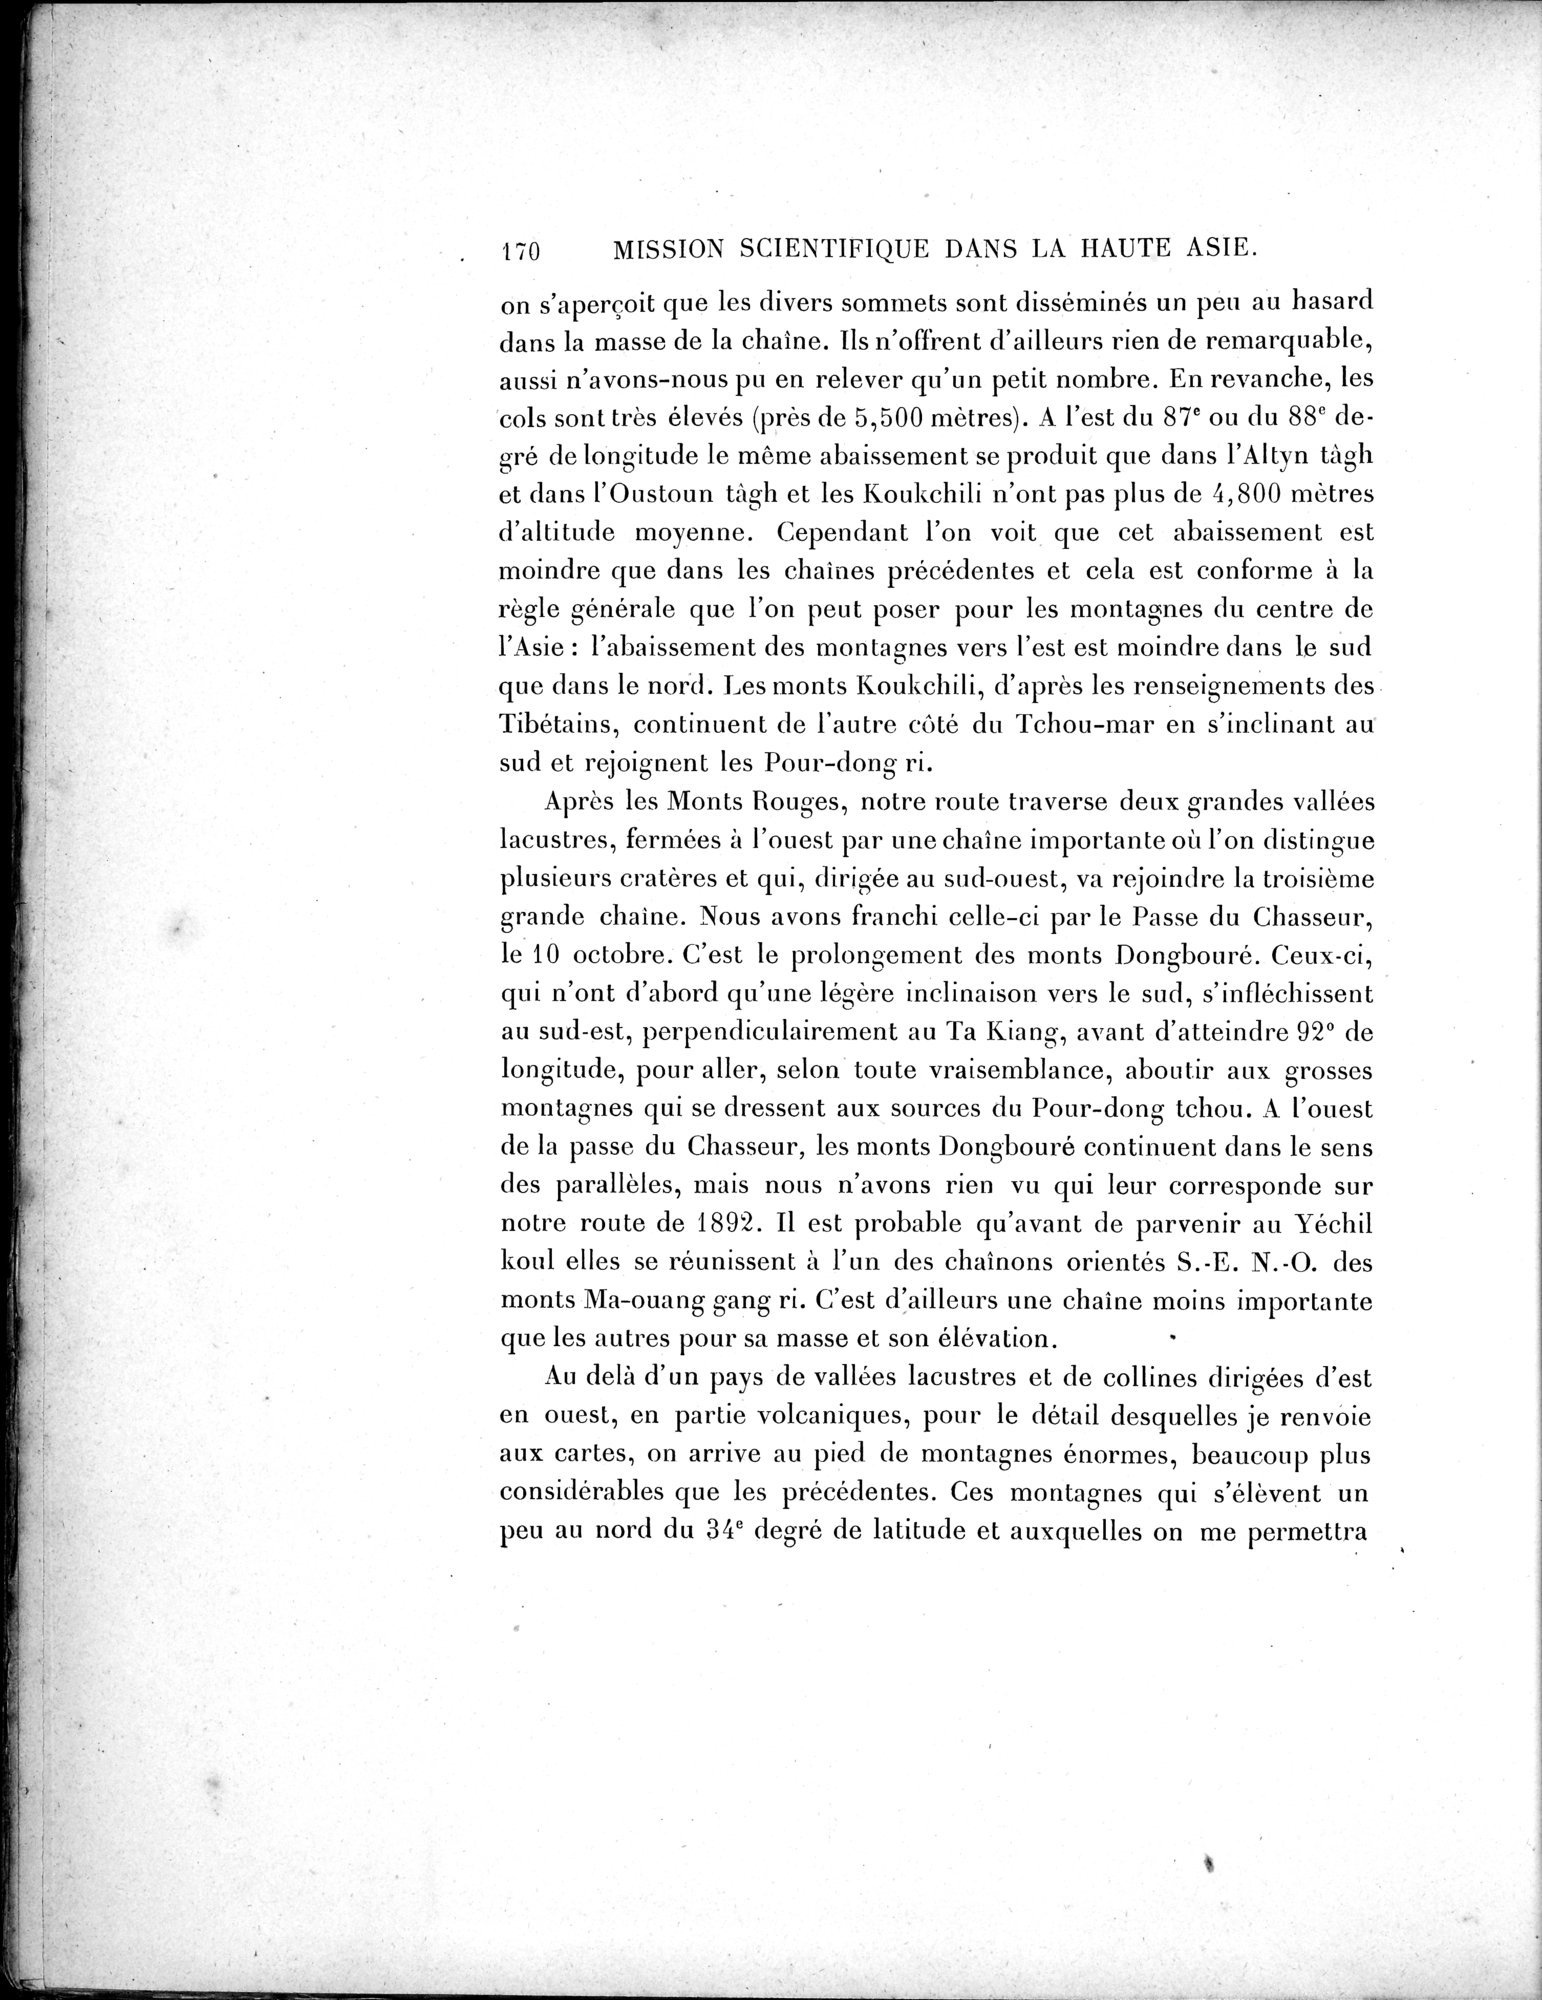 Mission Scientifique dans la Haute Asie 1890-1895 : vol.3 / Page 188 (Grayscale High Resolution Image)